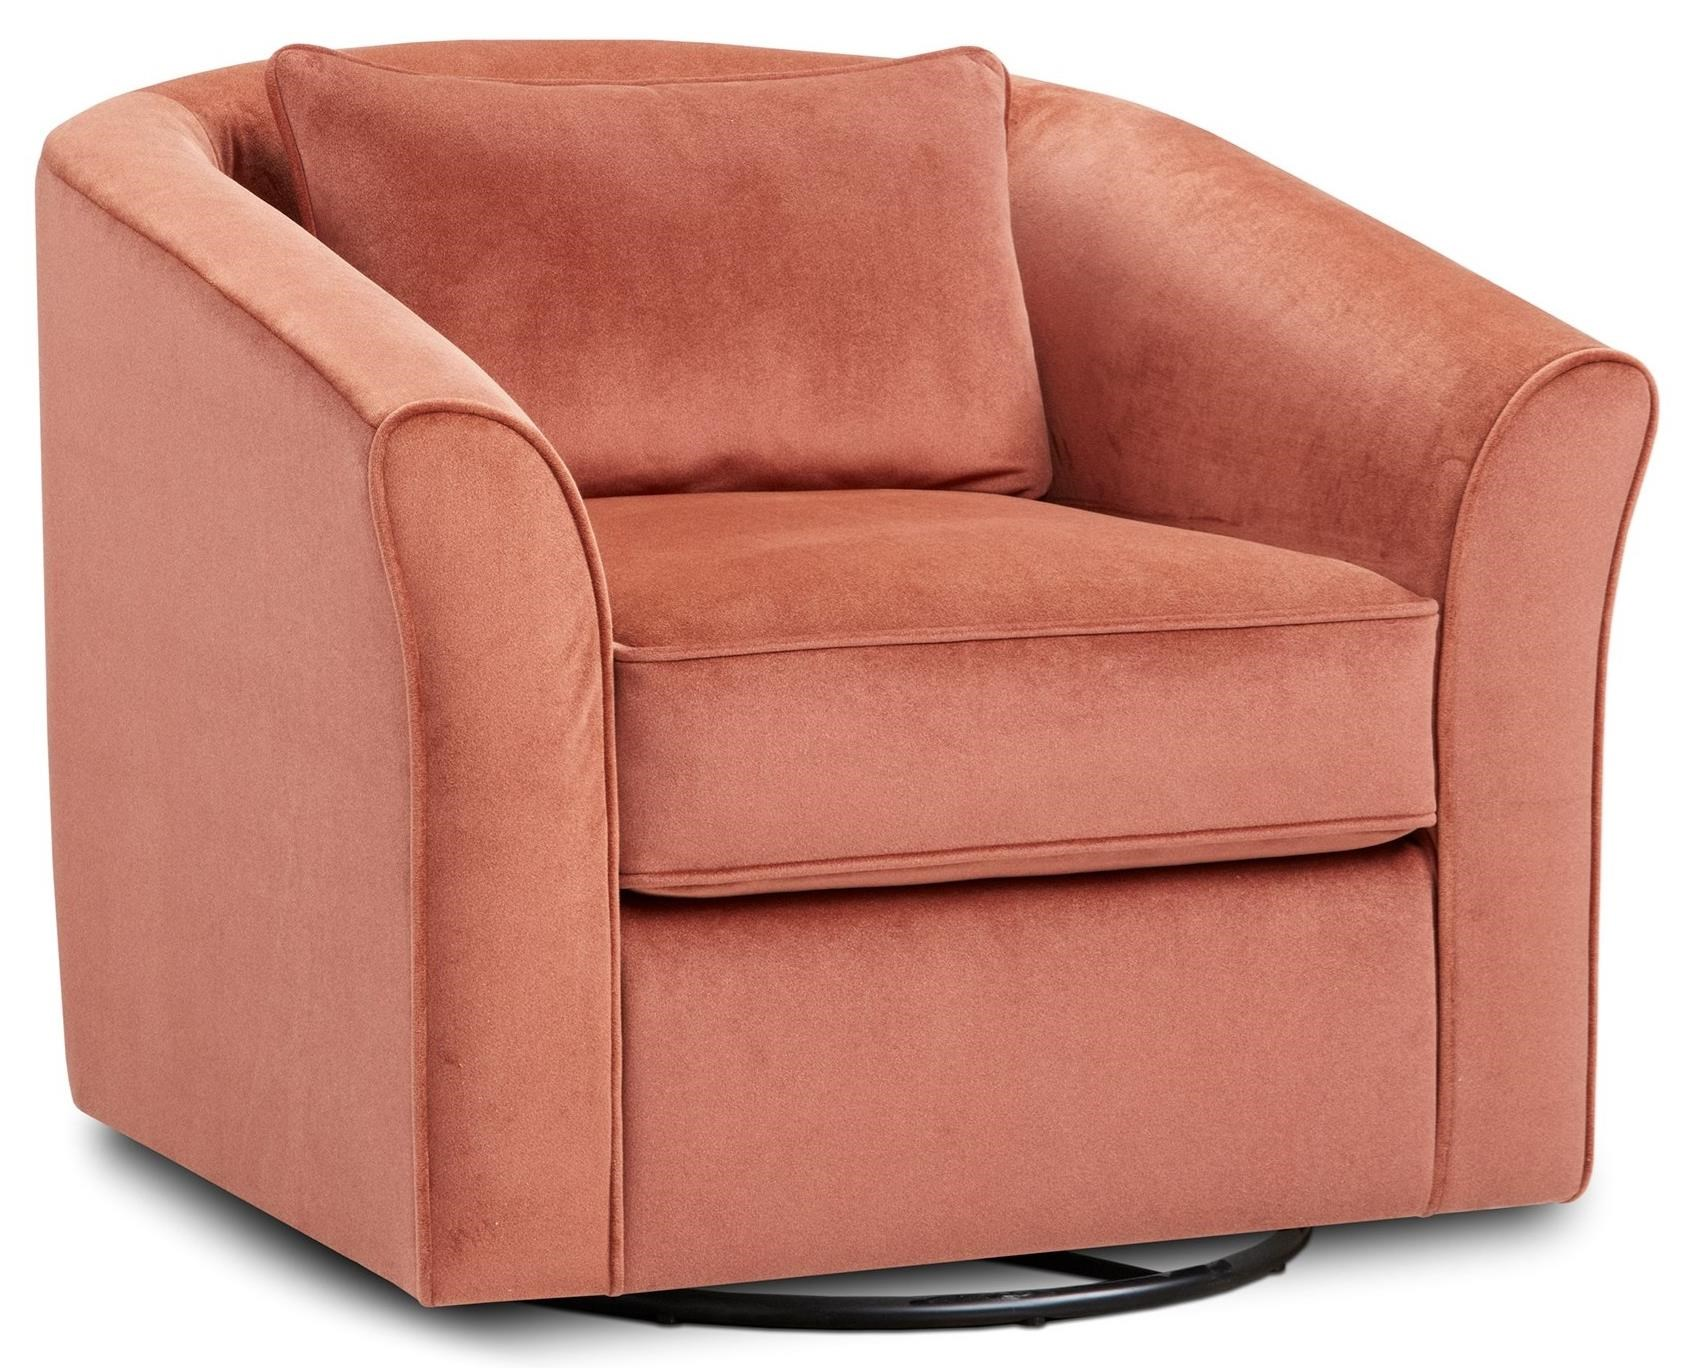 53-02 Swivel Chair by Fusion Furniture at Prime Brothers Furniture